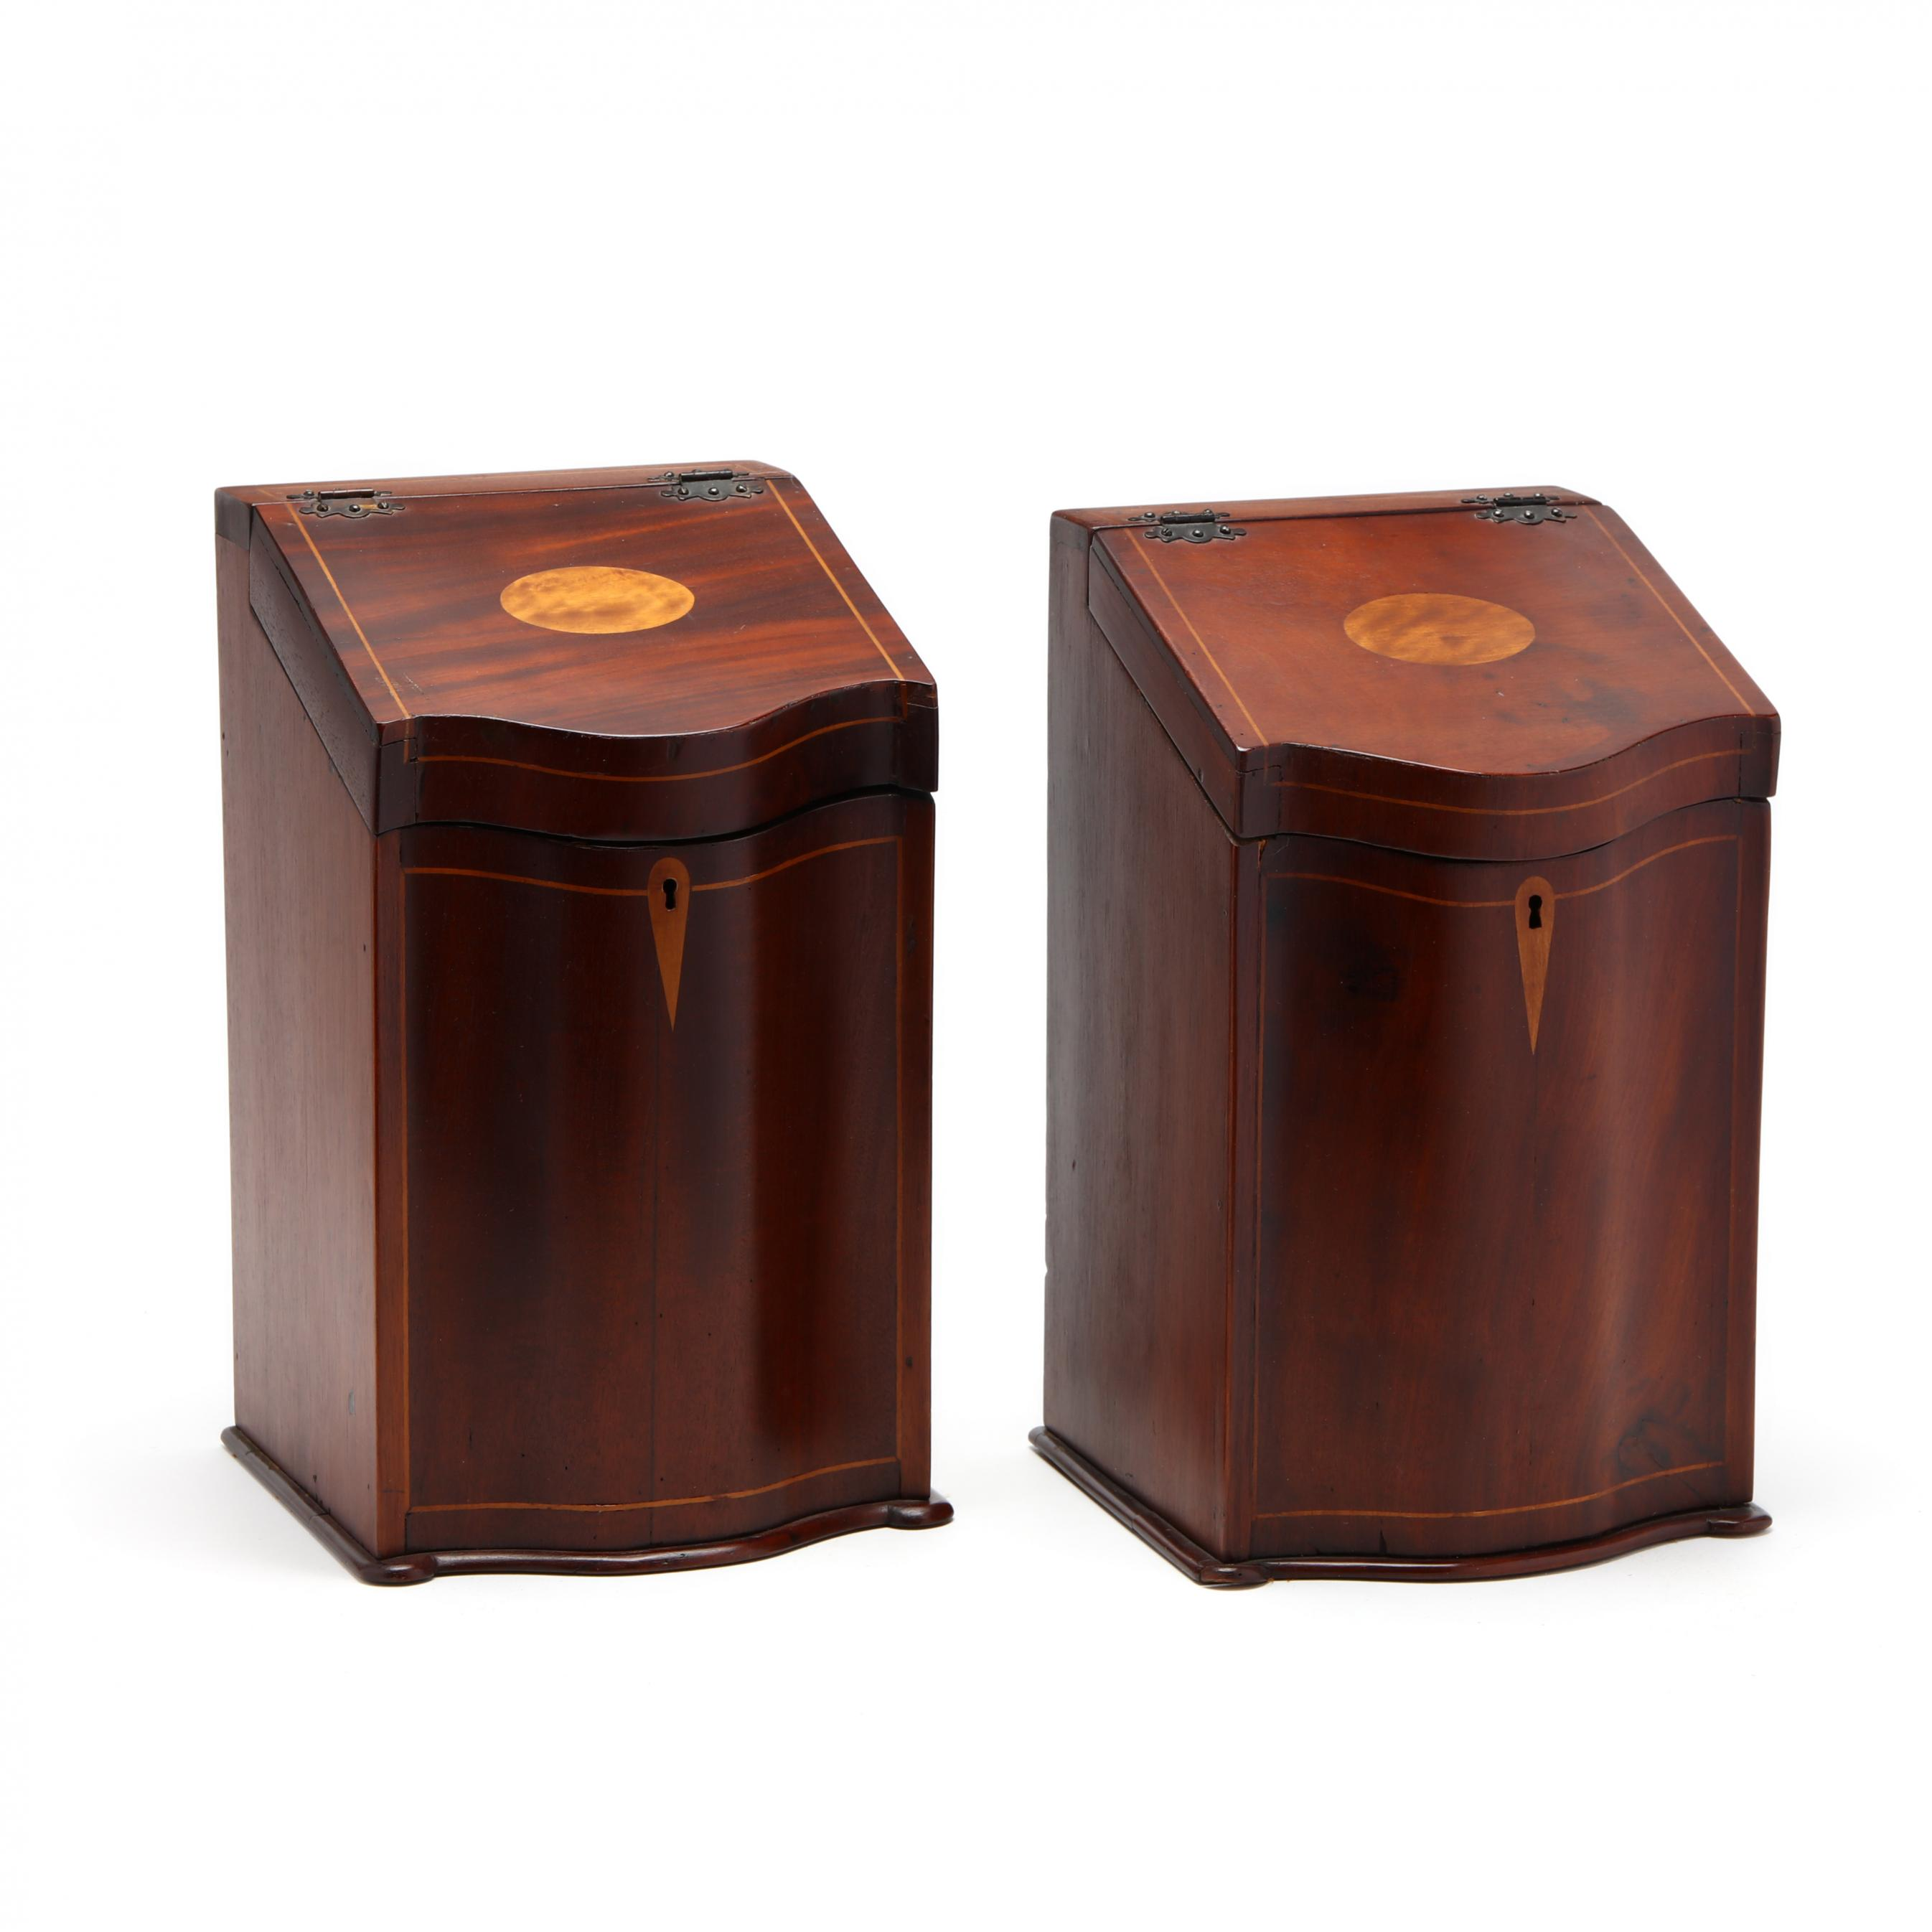 a-pair-of-edwardian-inlaid-knife-boxes